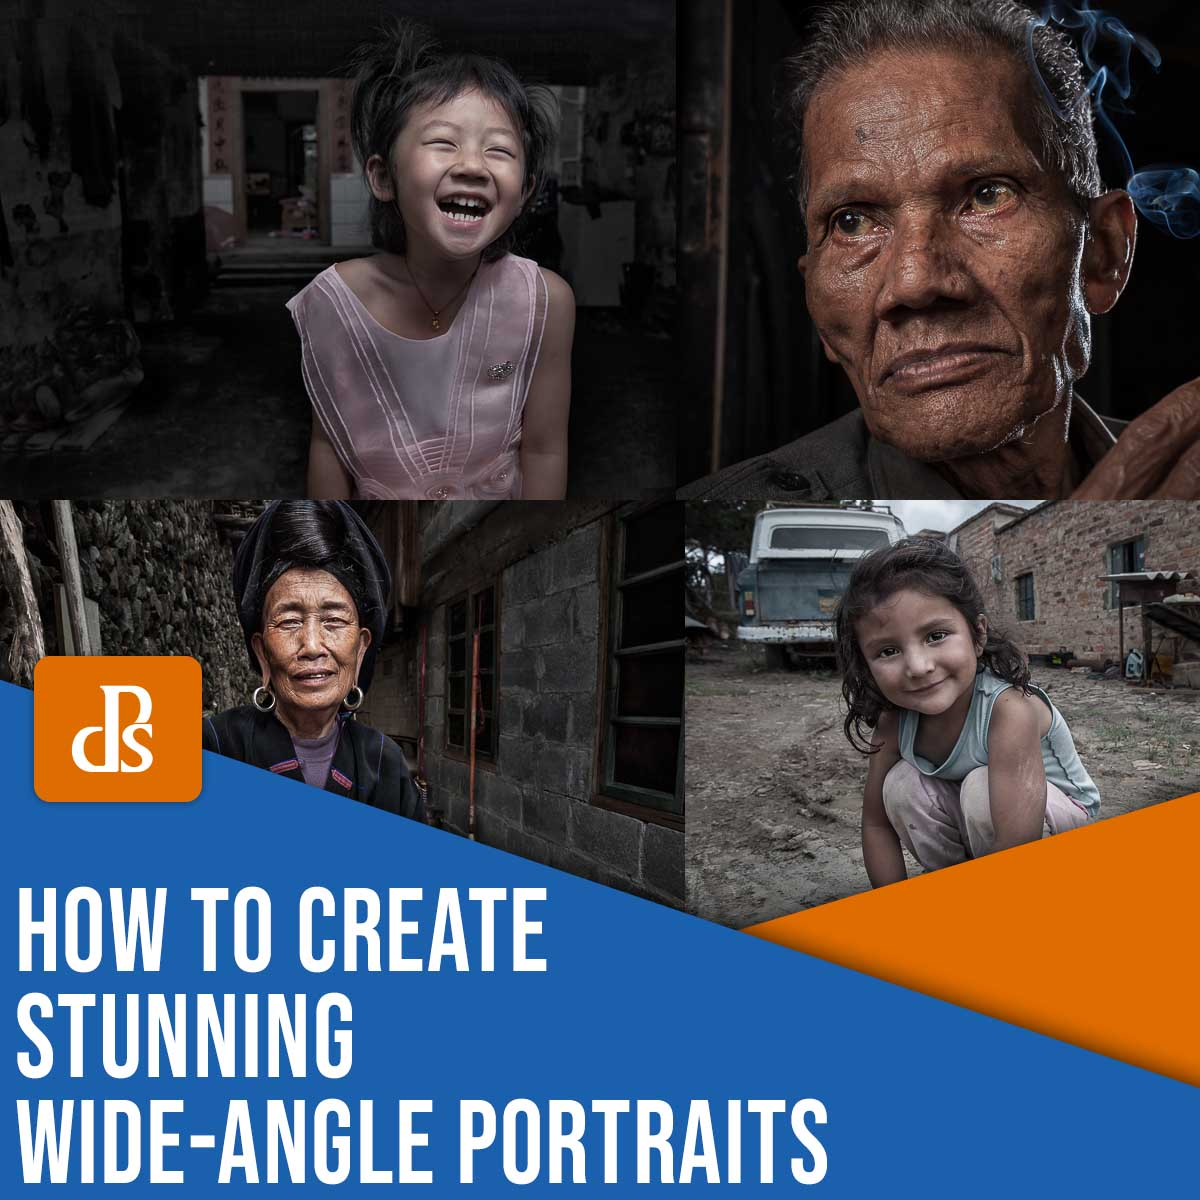 How to Create Stunning Wide-Angle Portraits (Using an Off-Camera Flash)